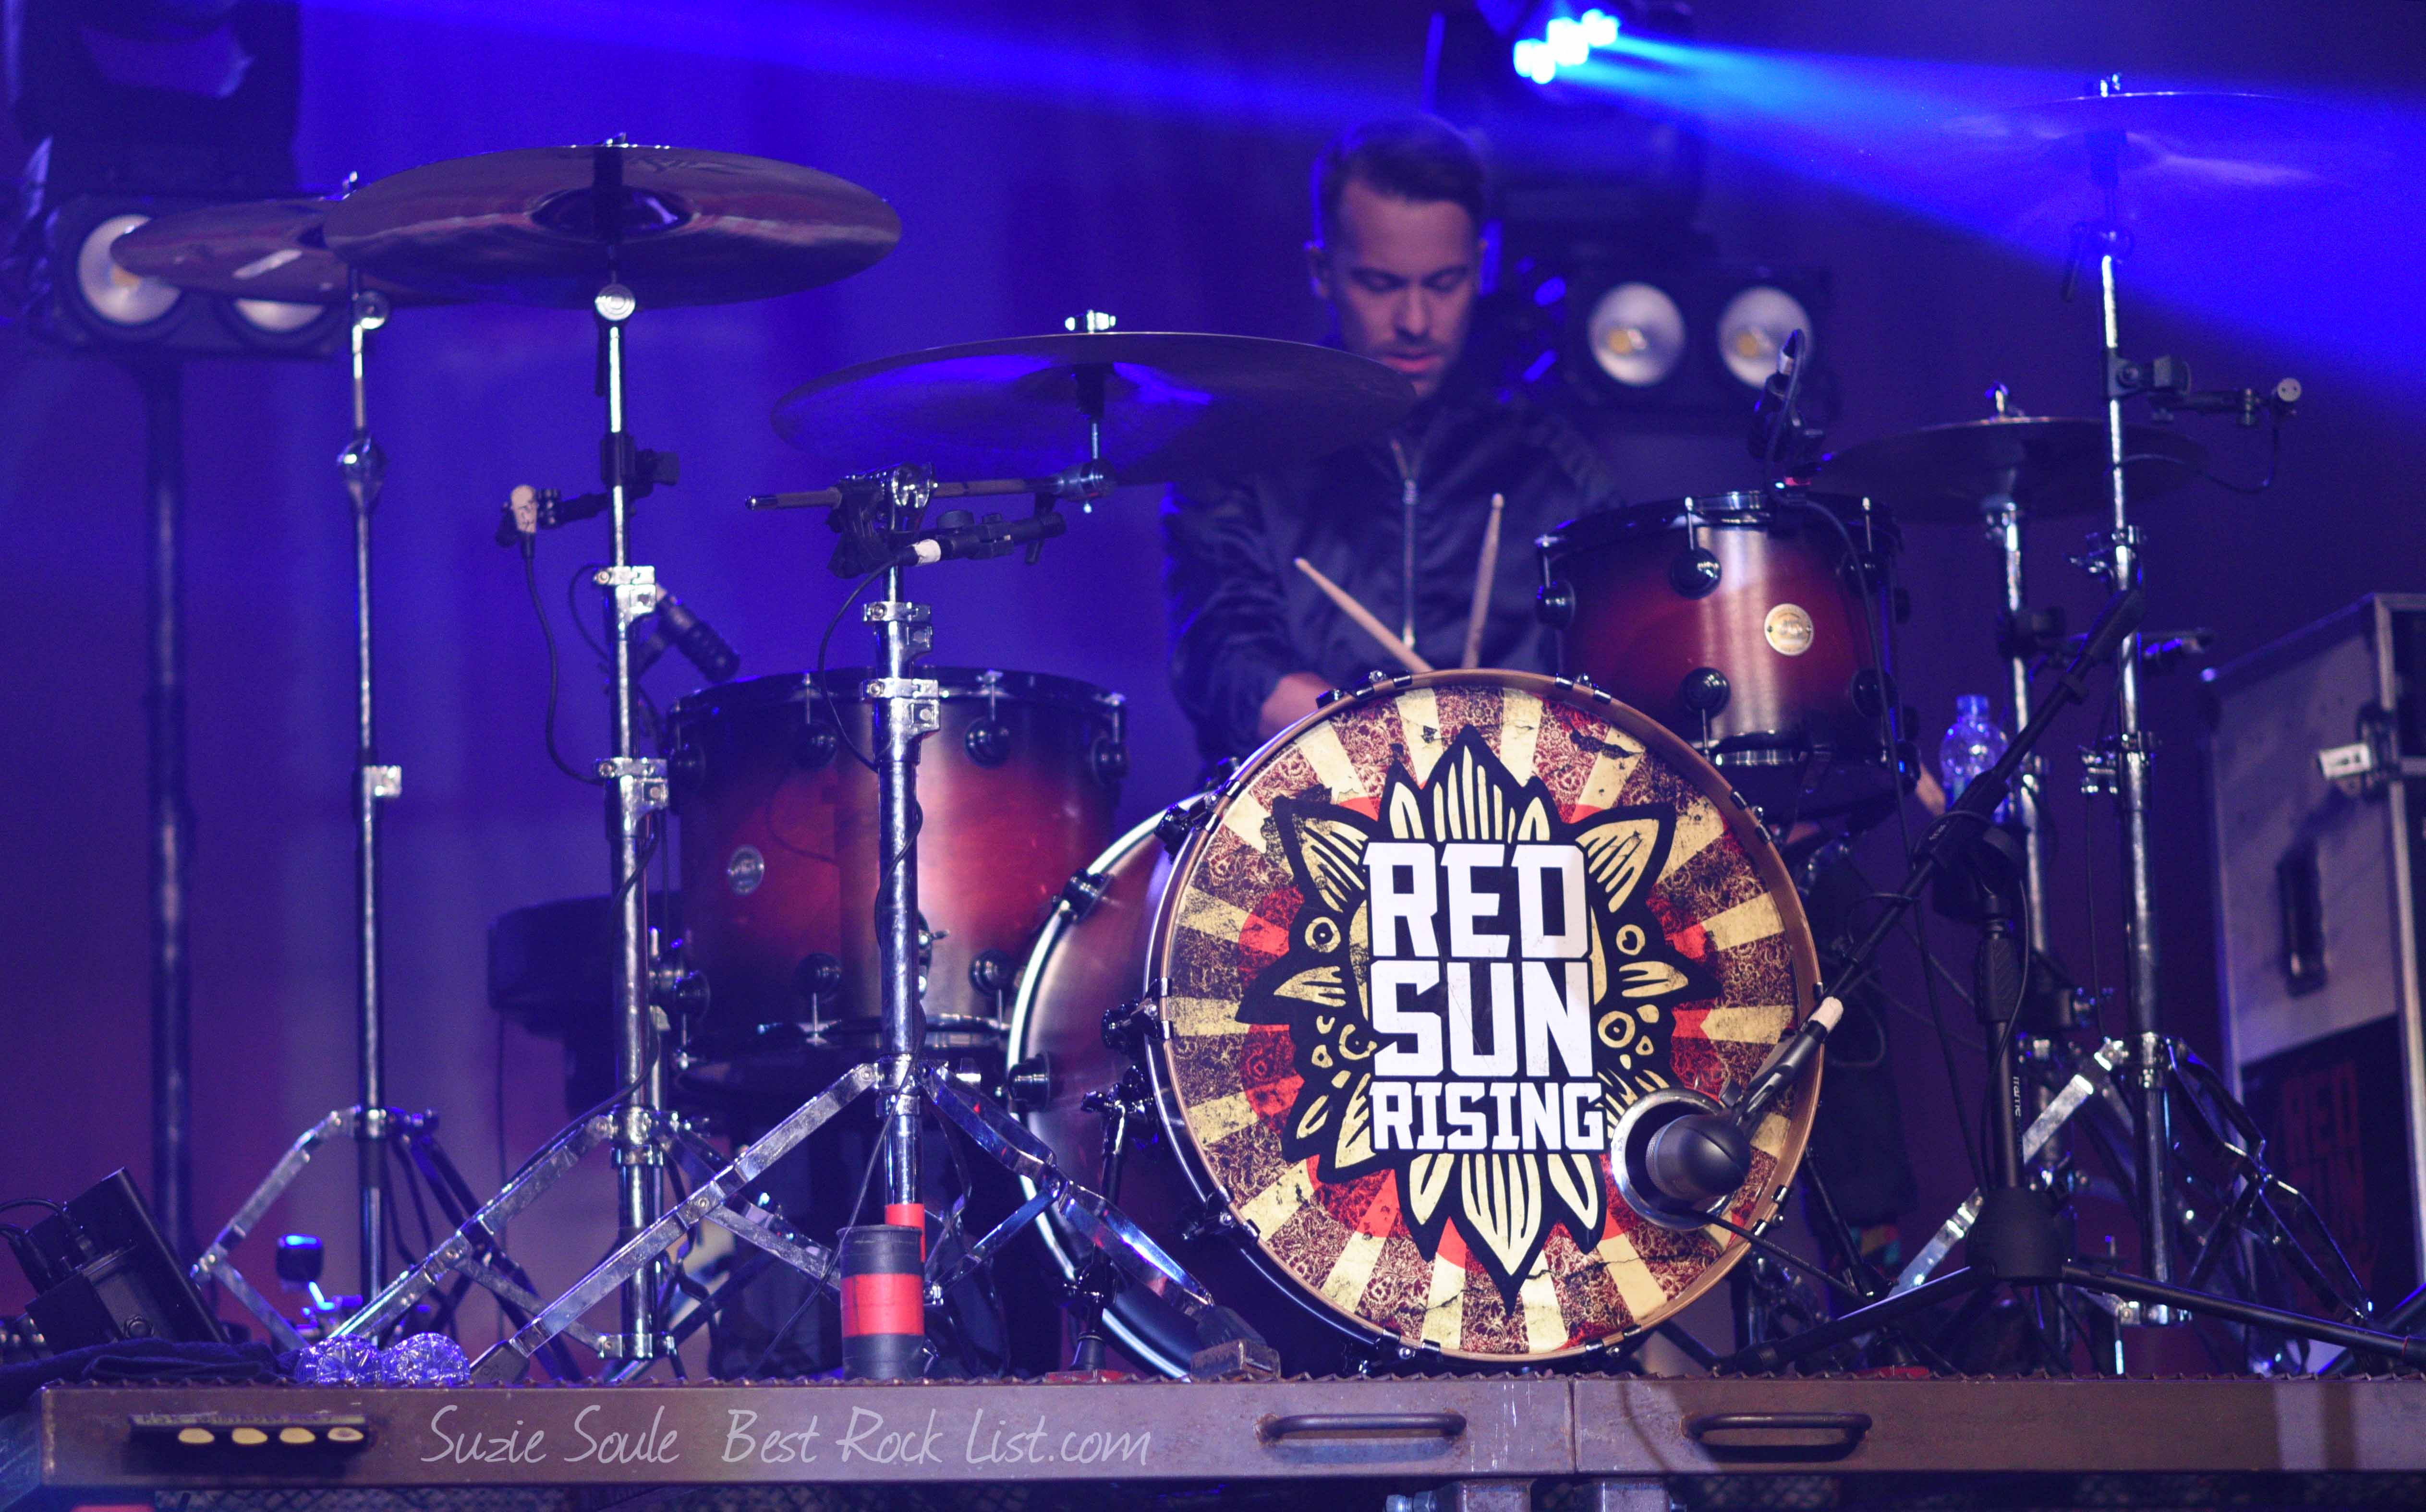 Pat Gerasia of Red Sun Rising